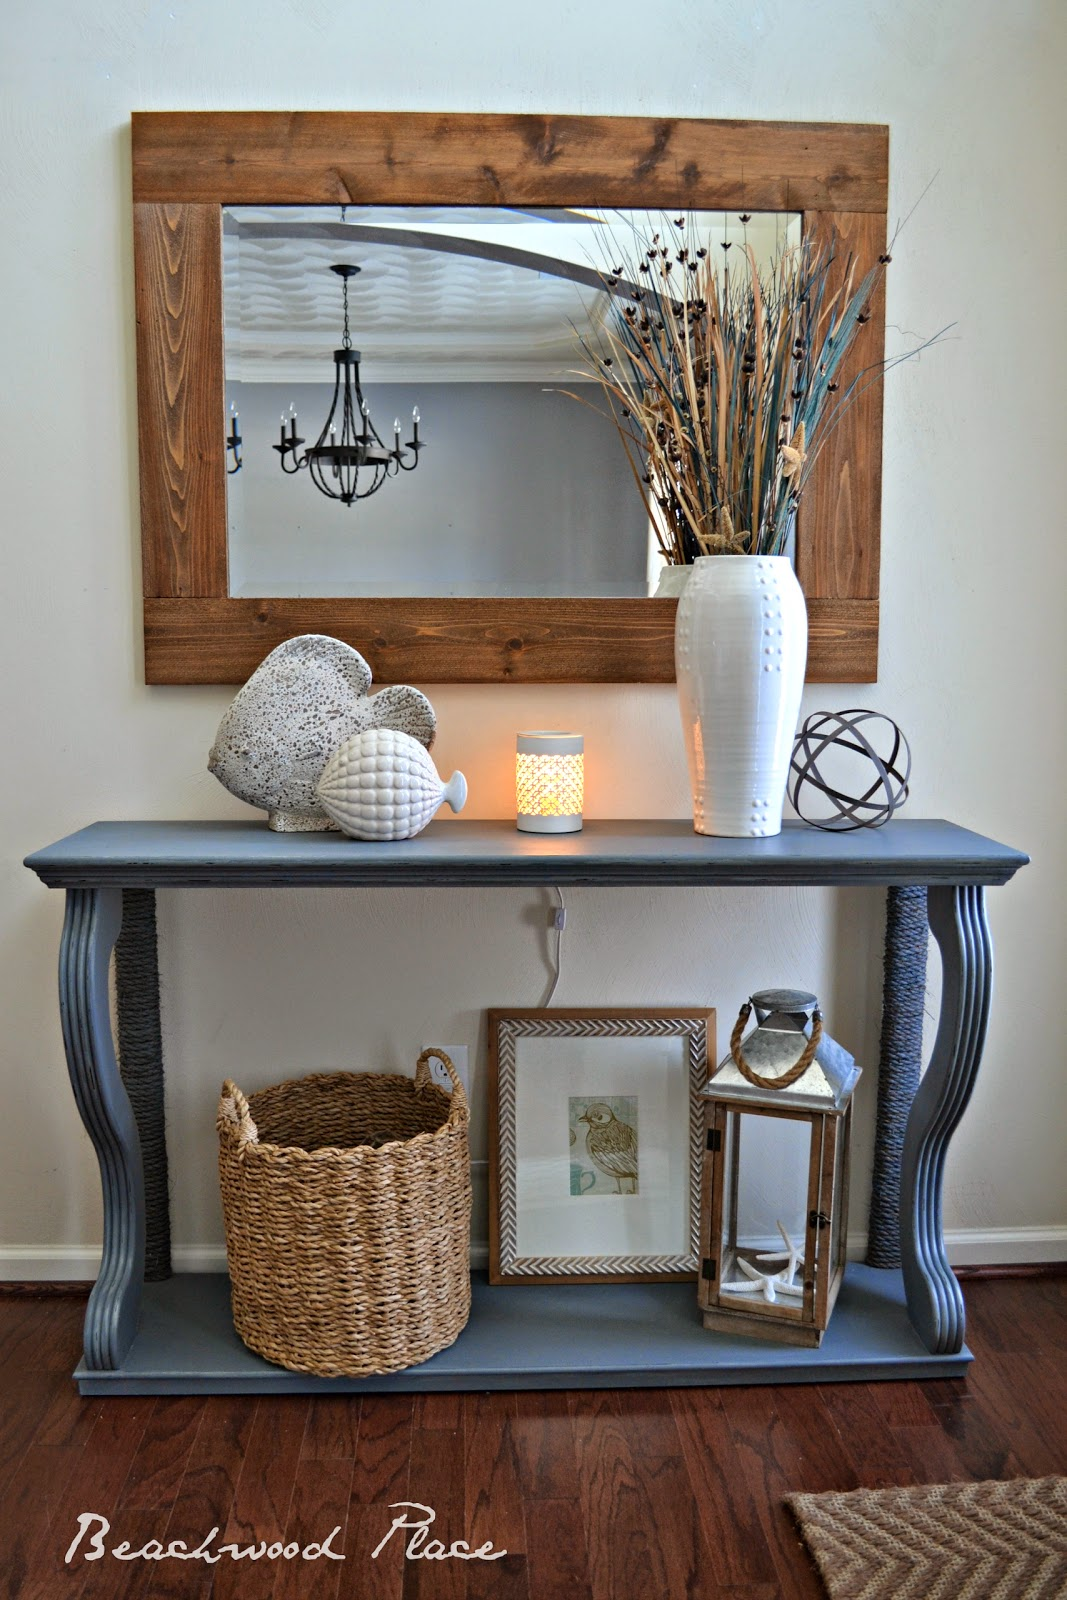 i always wanted to have a wide framed mirror and i finally found a great tutorial on the wood grain cottage